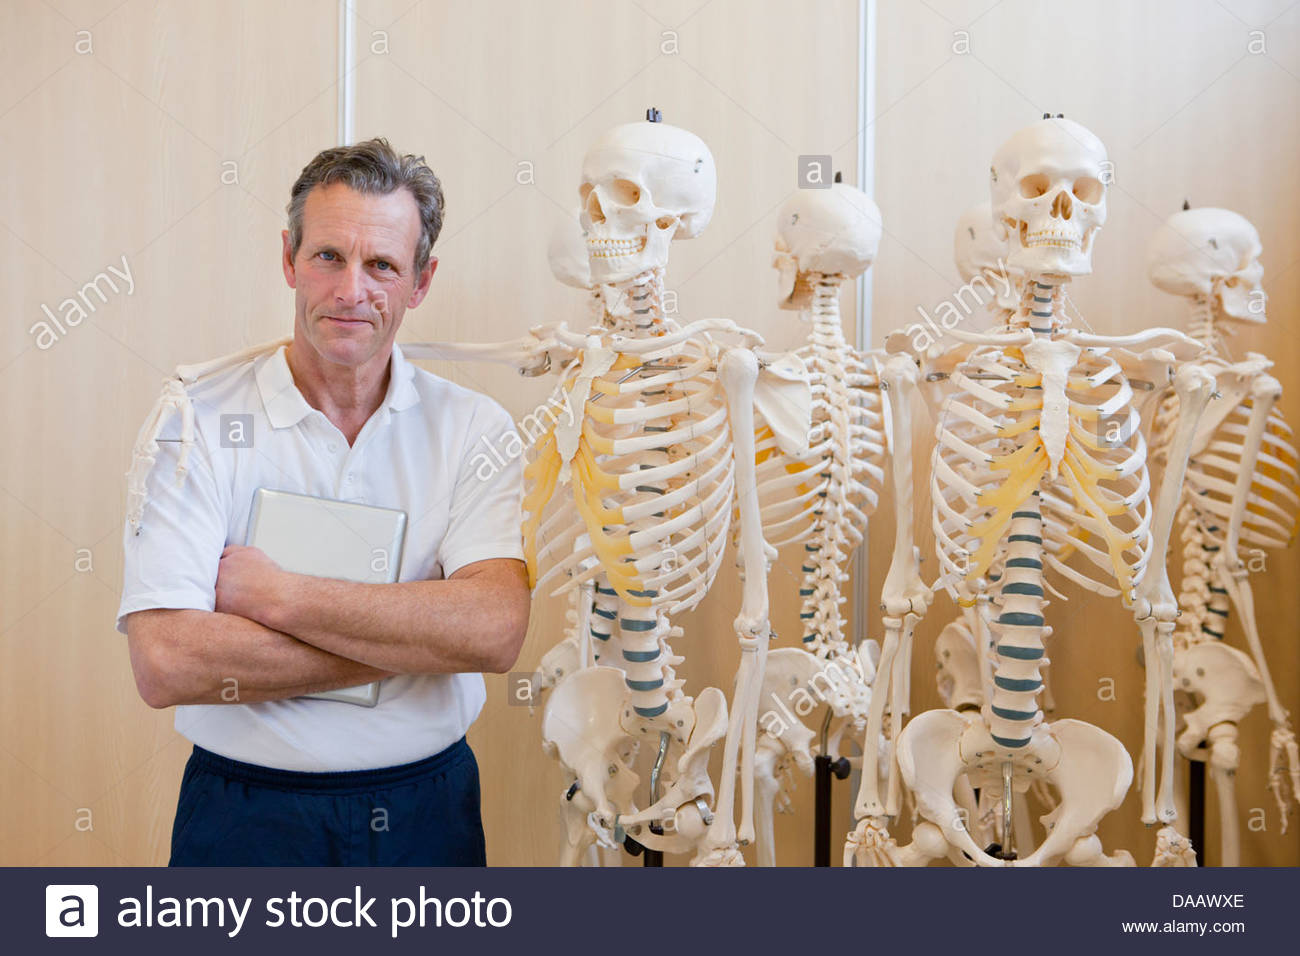 Portrait of confident sports scientist standing next to skeleton models - Stock Image